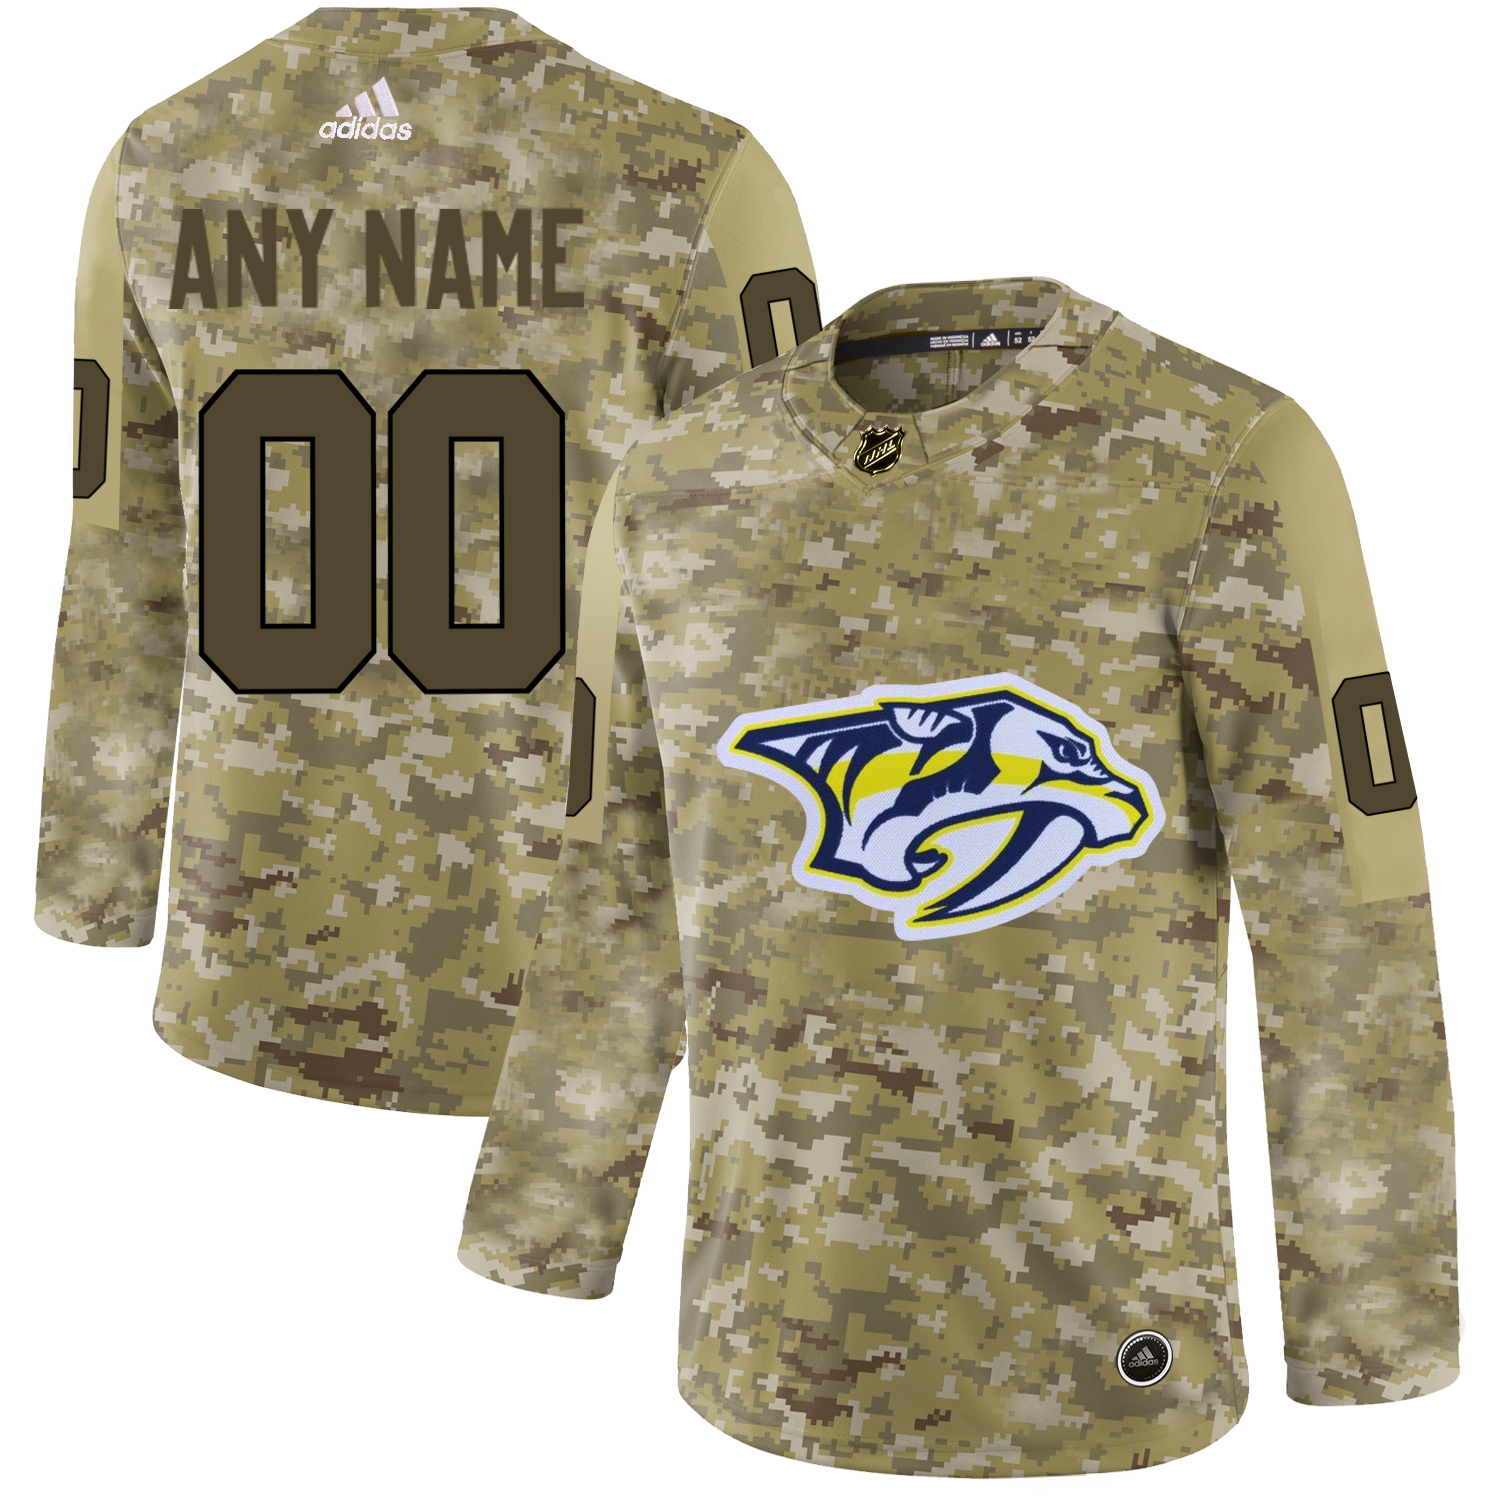 Nashville Predators Camo Men's Customized Adidas Jersey